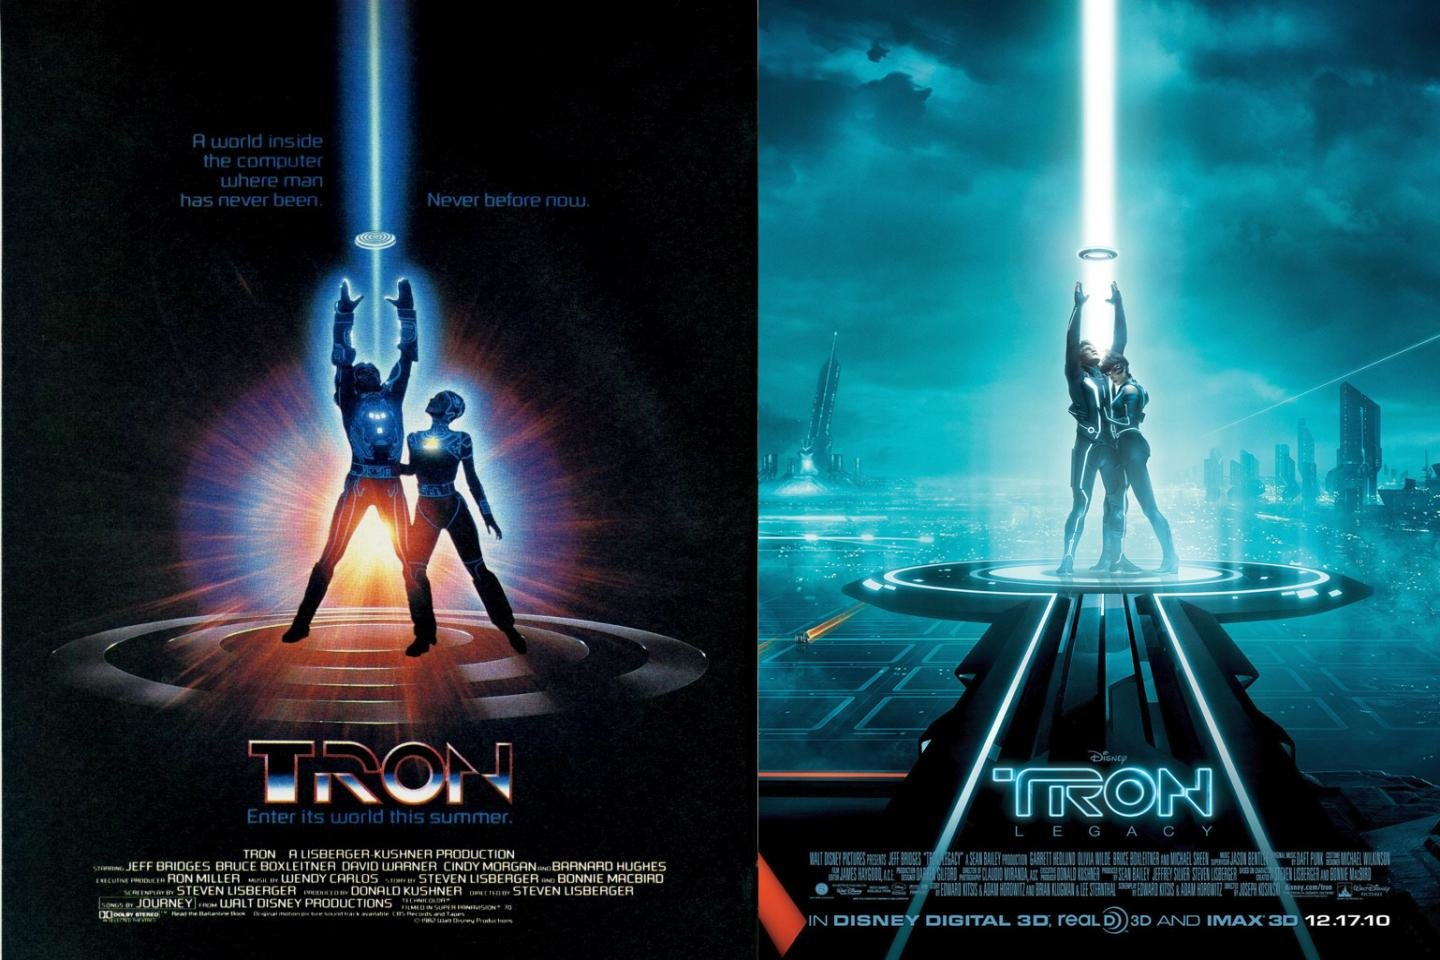 High Resolution TRON Legacy Hd 1440x960 Wallpaper ID379415 For Computer